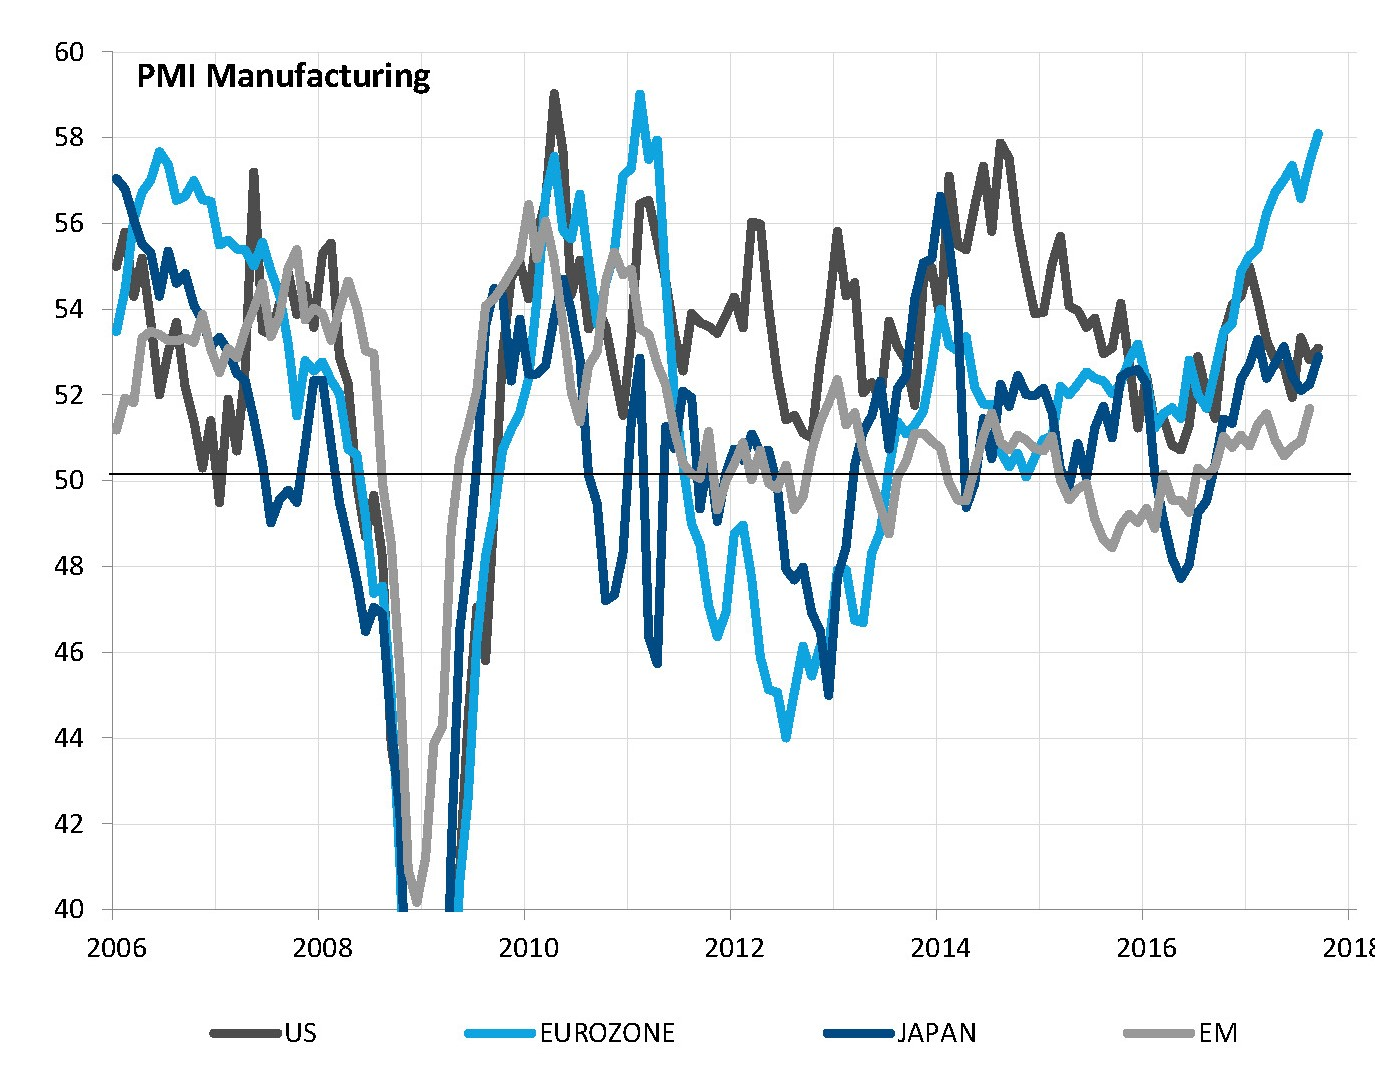 Cyclical indicators all point to global expansion, with Europe standing out